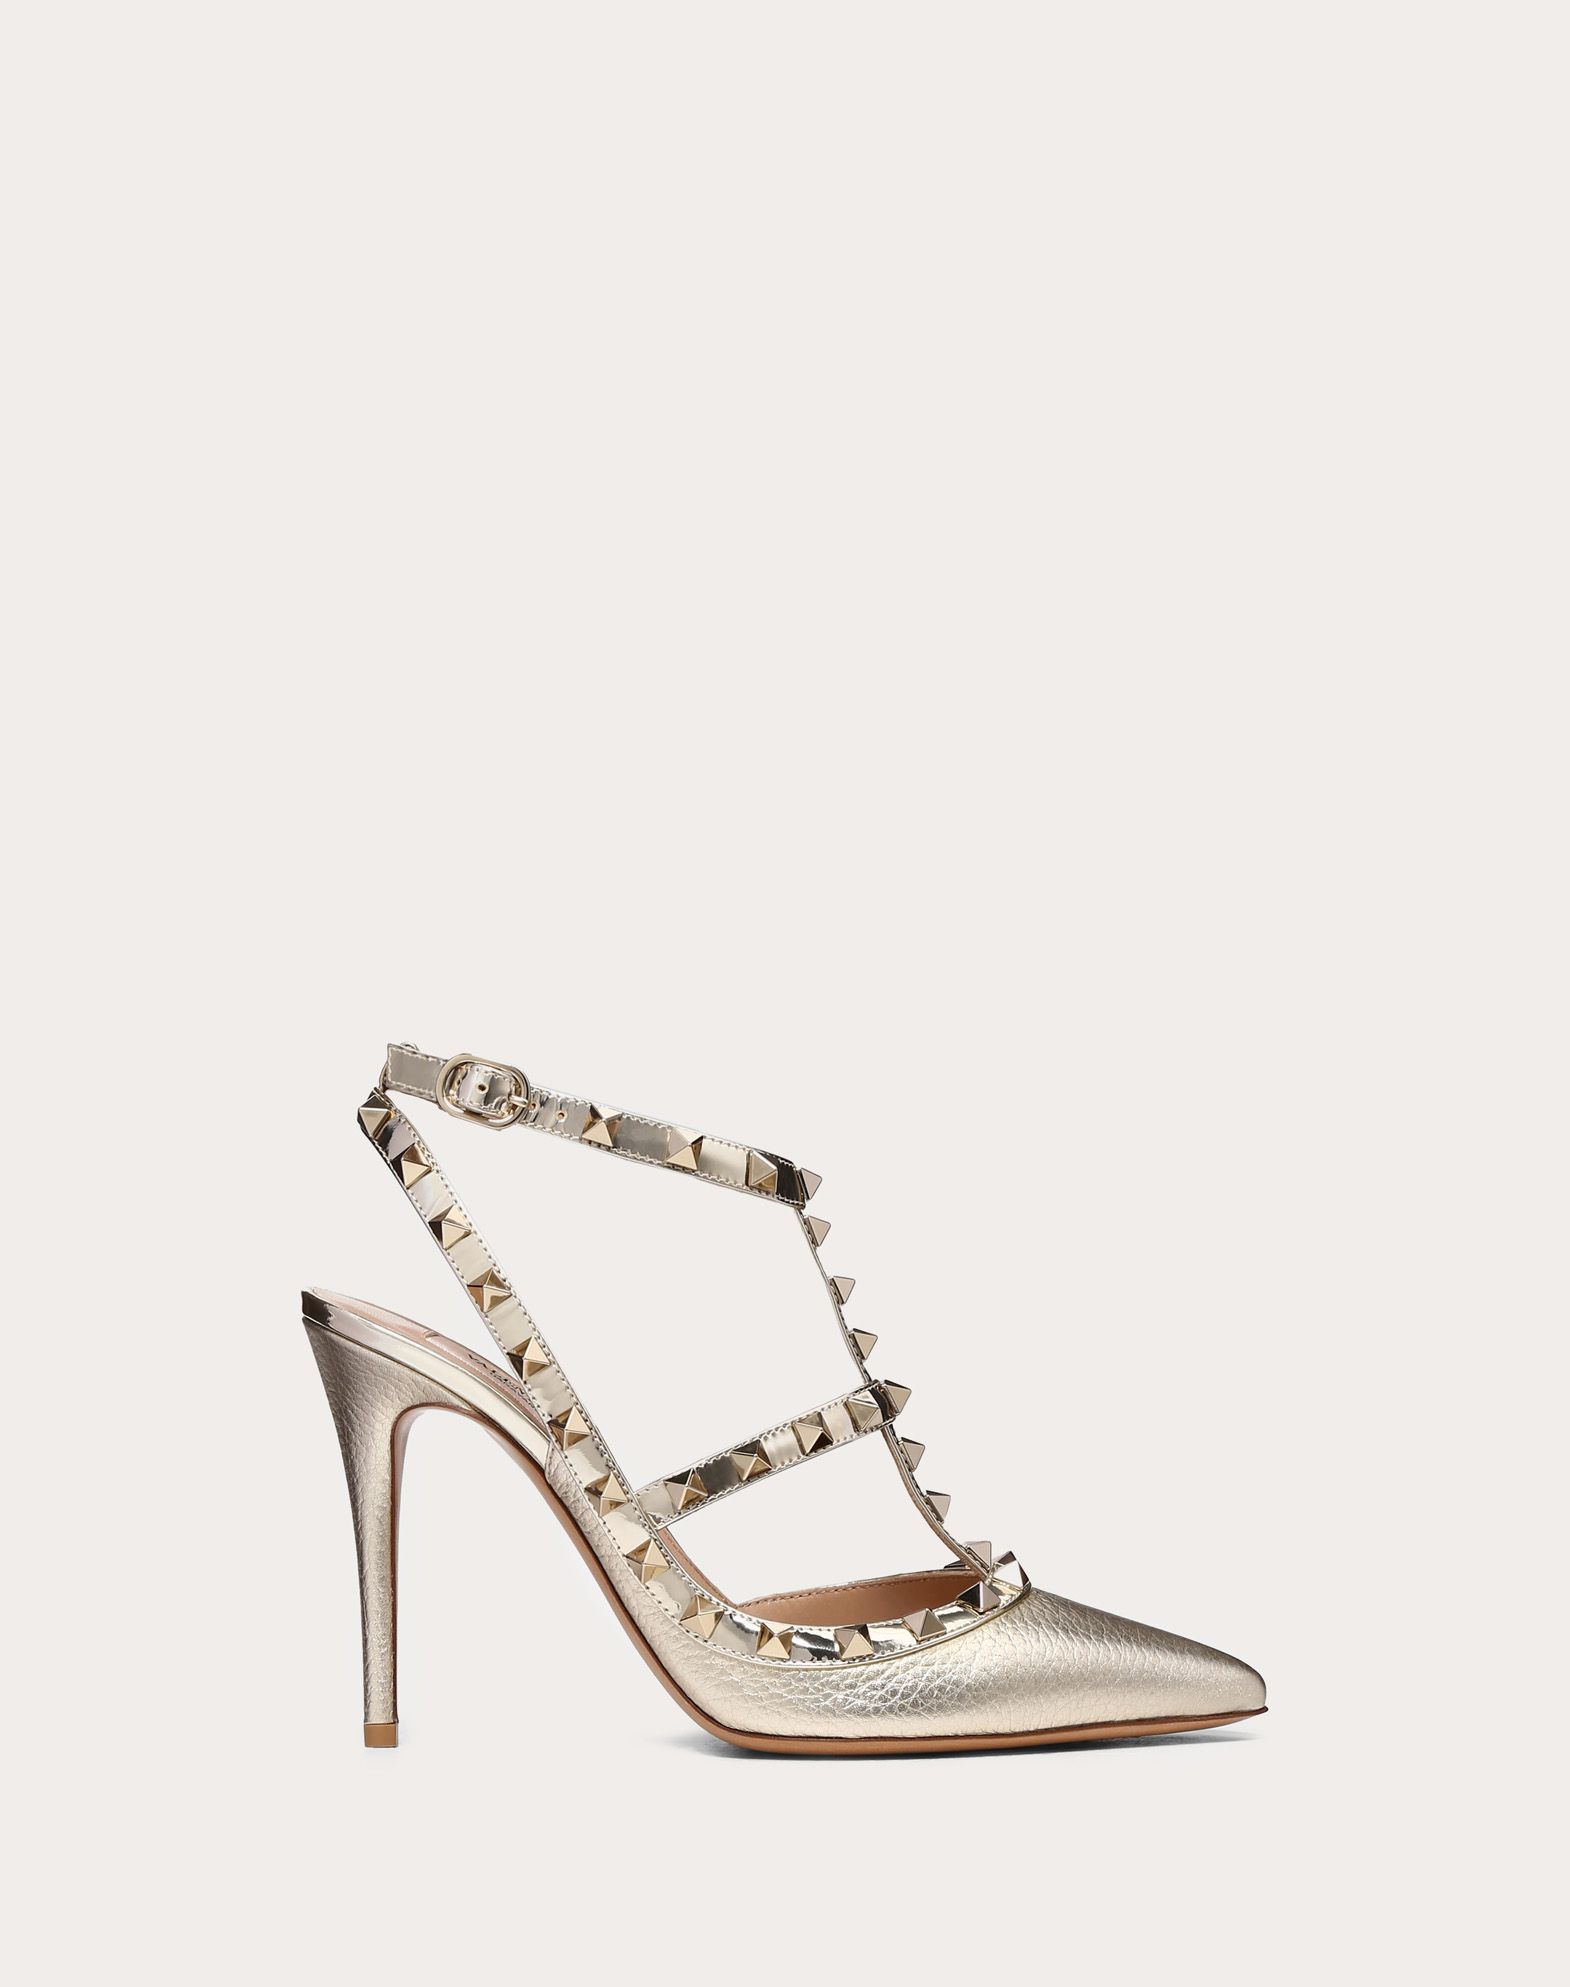 5dbbf242cff Valentino Metallic Rockstud Pump 100Mm In Platinum